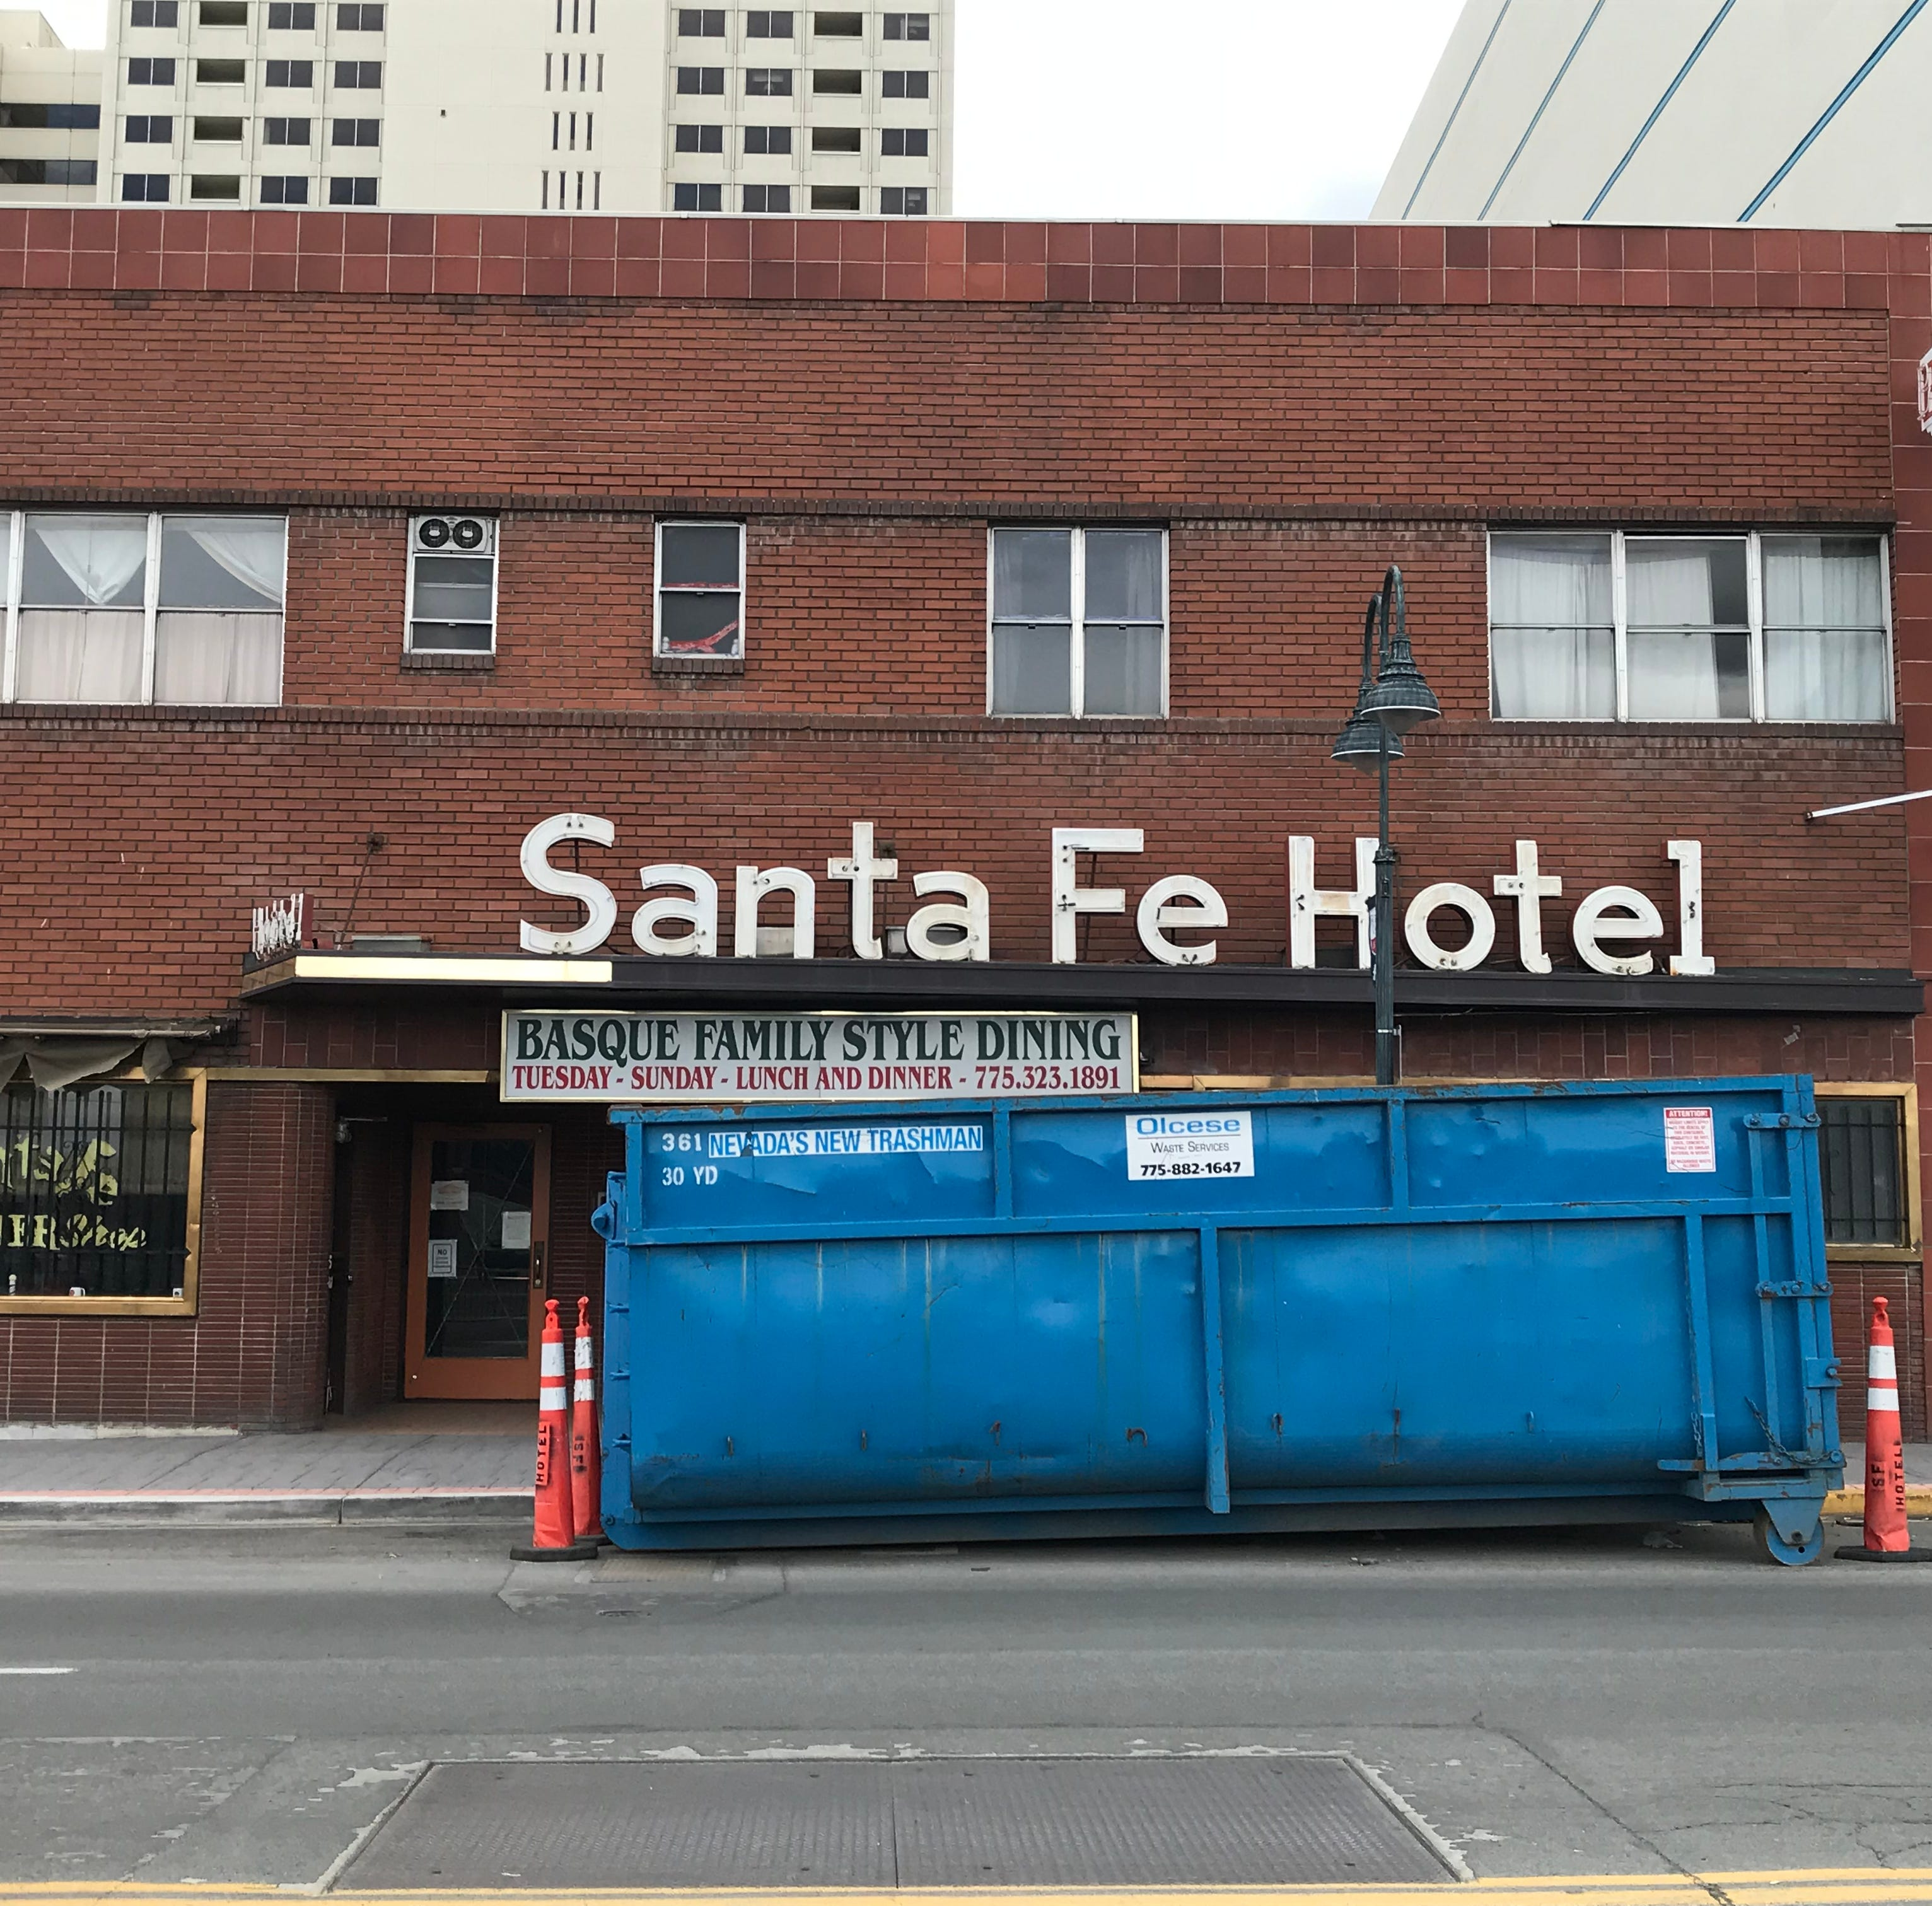 Only on RGJ: Santa Fe Hotel, longtime Reno Basque restaurant, set to re-open in May 2019